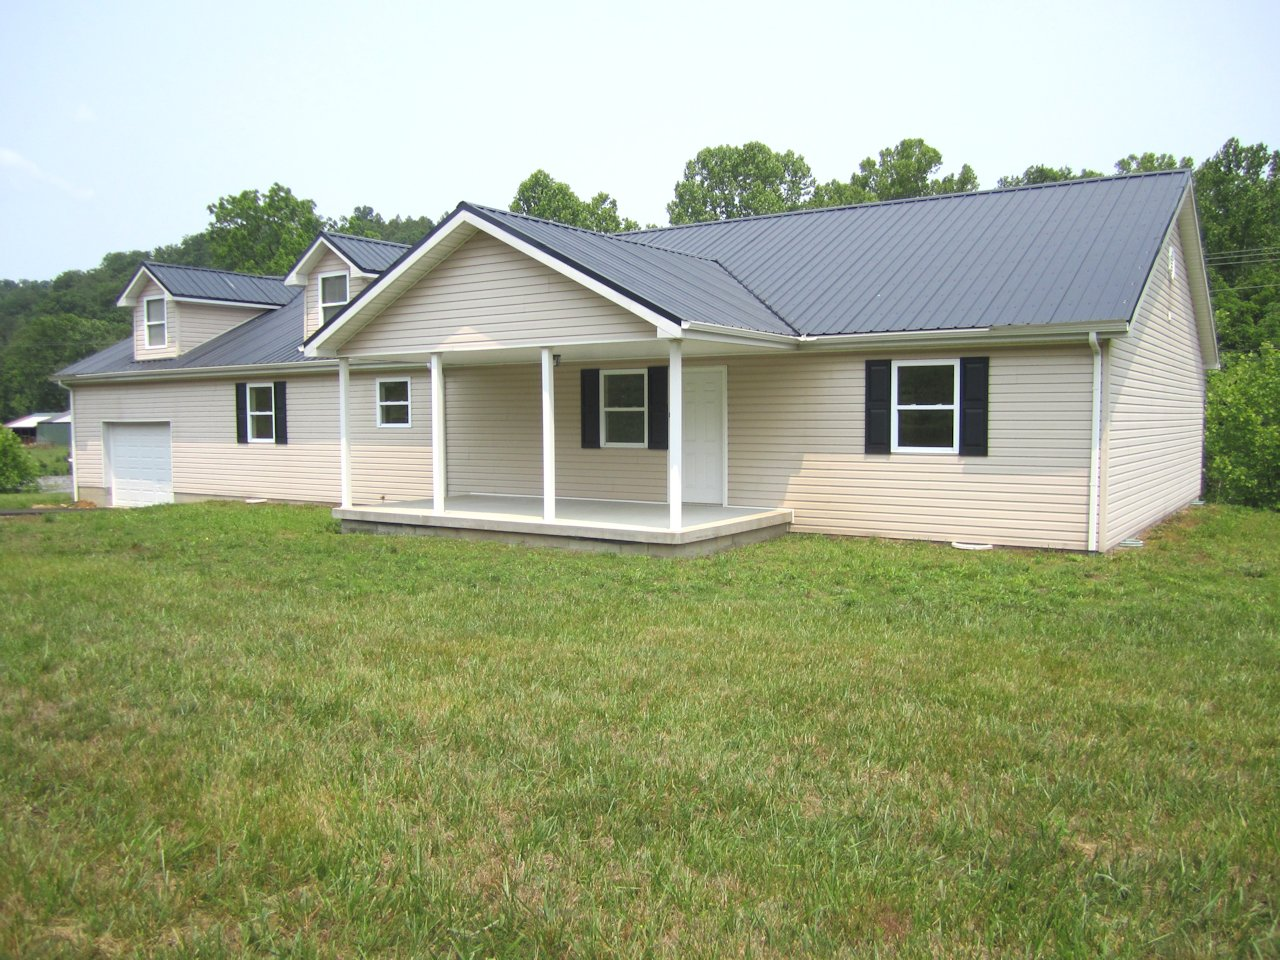 13008 N State Highway 9, Grayson, KY 41143